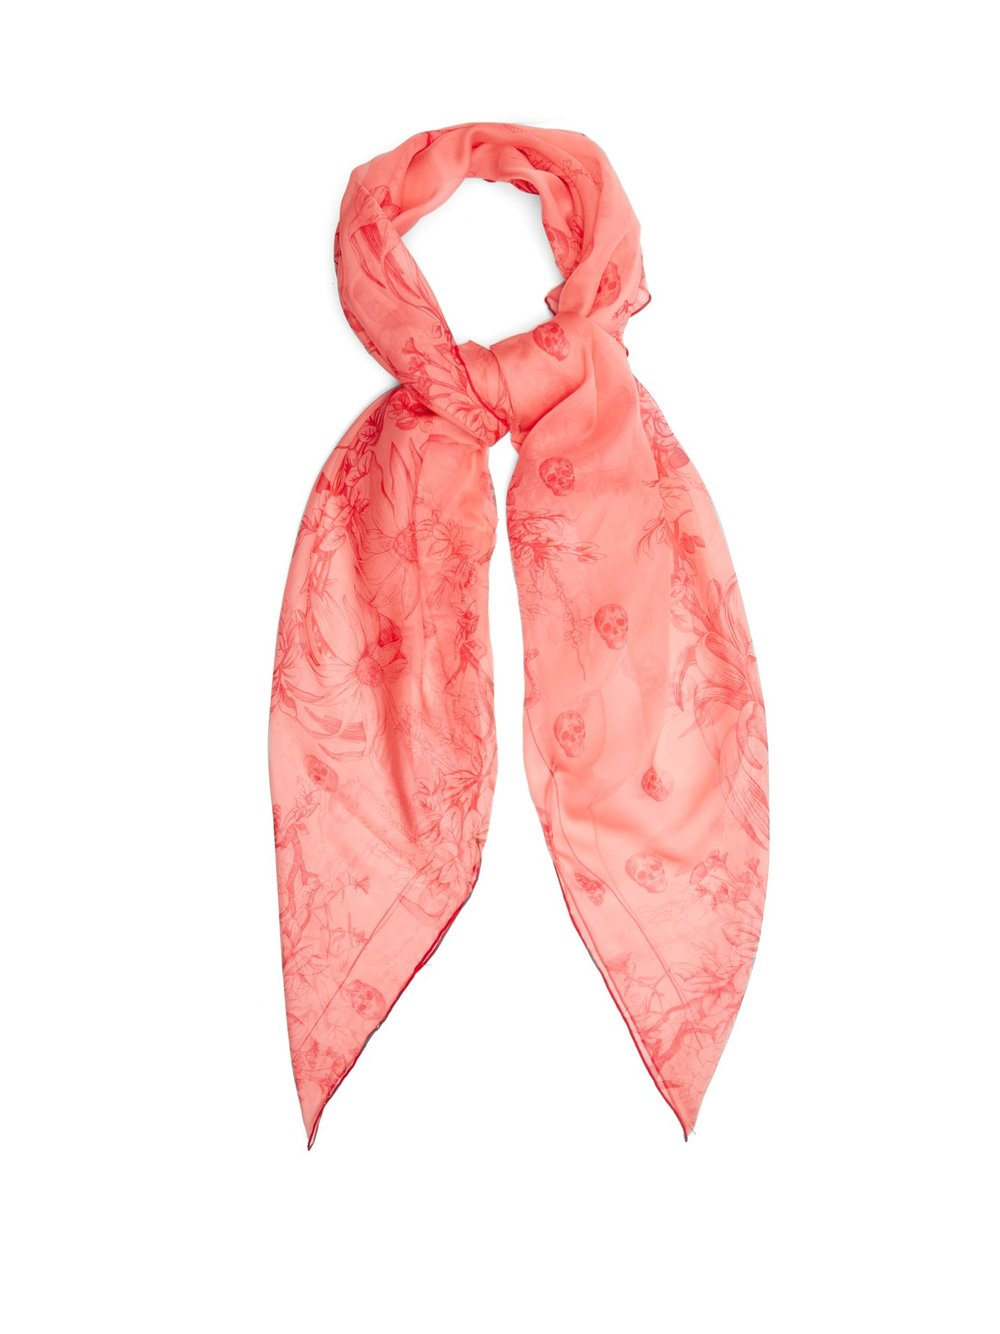 Silk scarf, £325 by Alexander McQueen at Matches